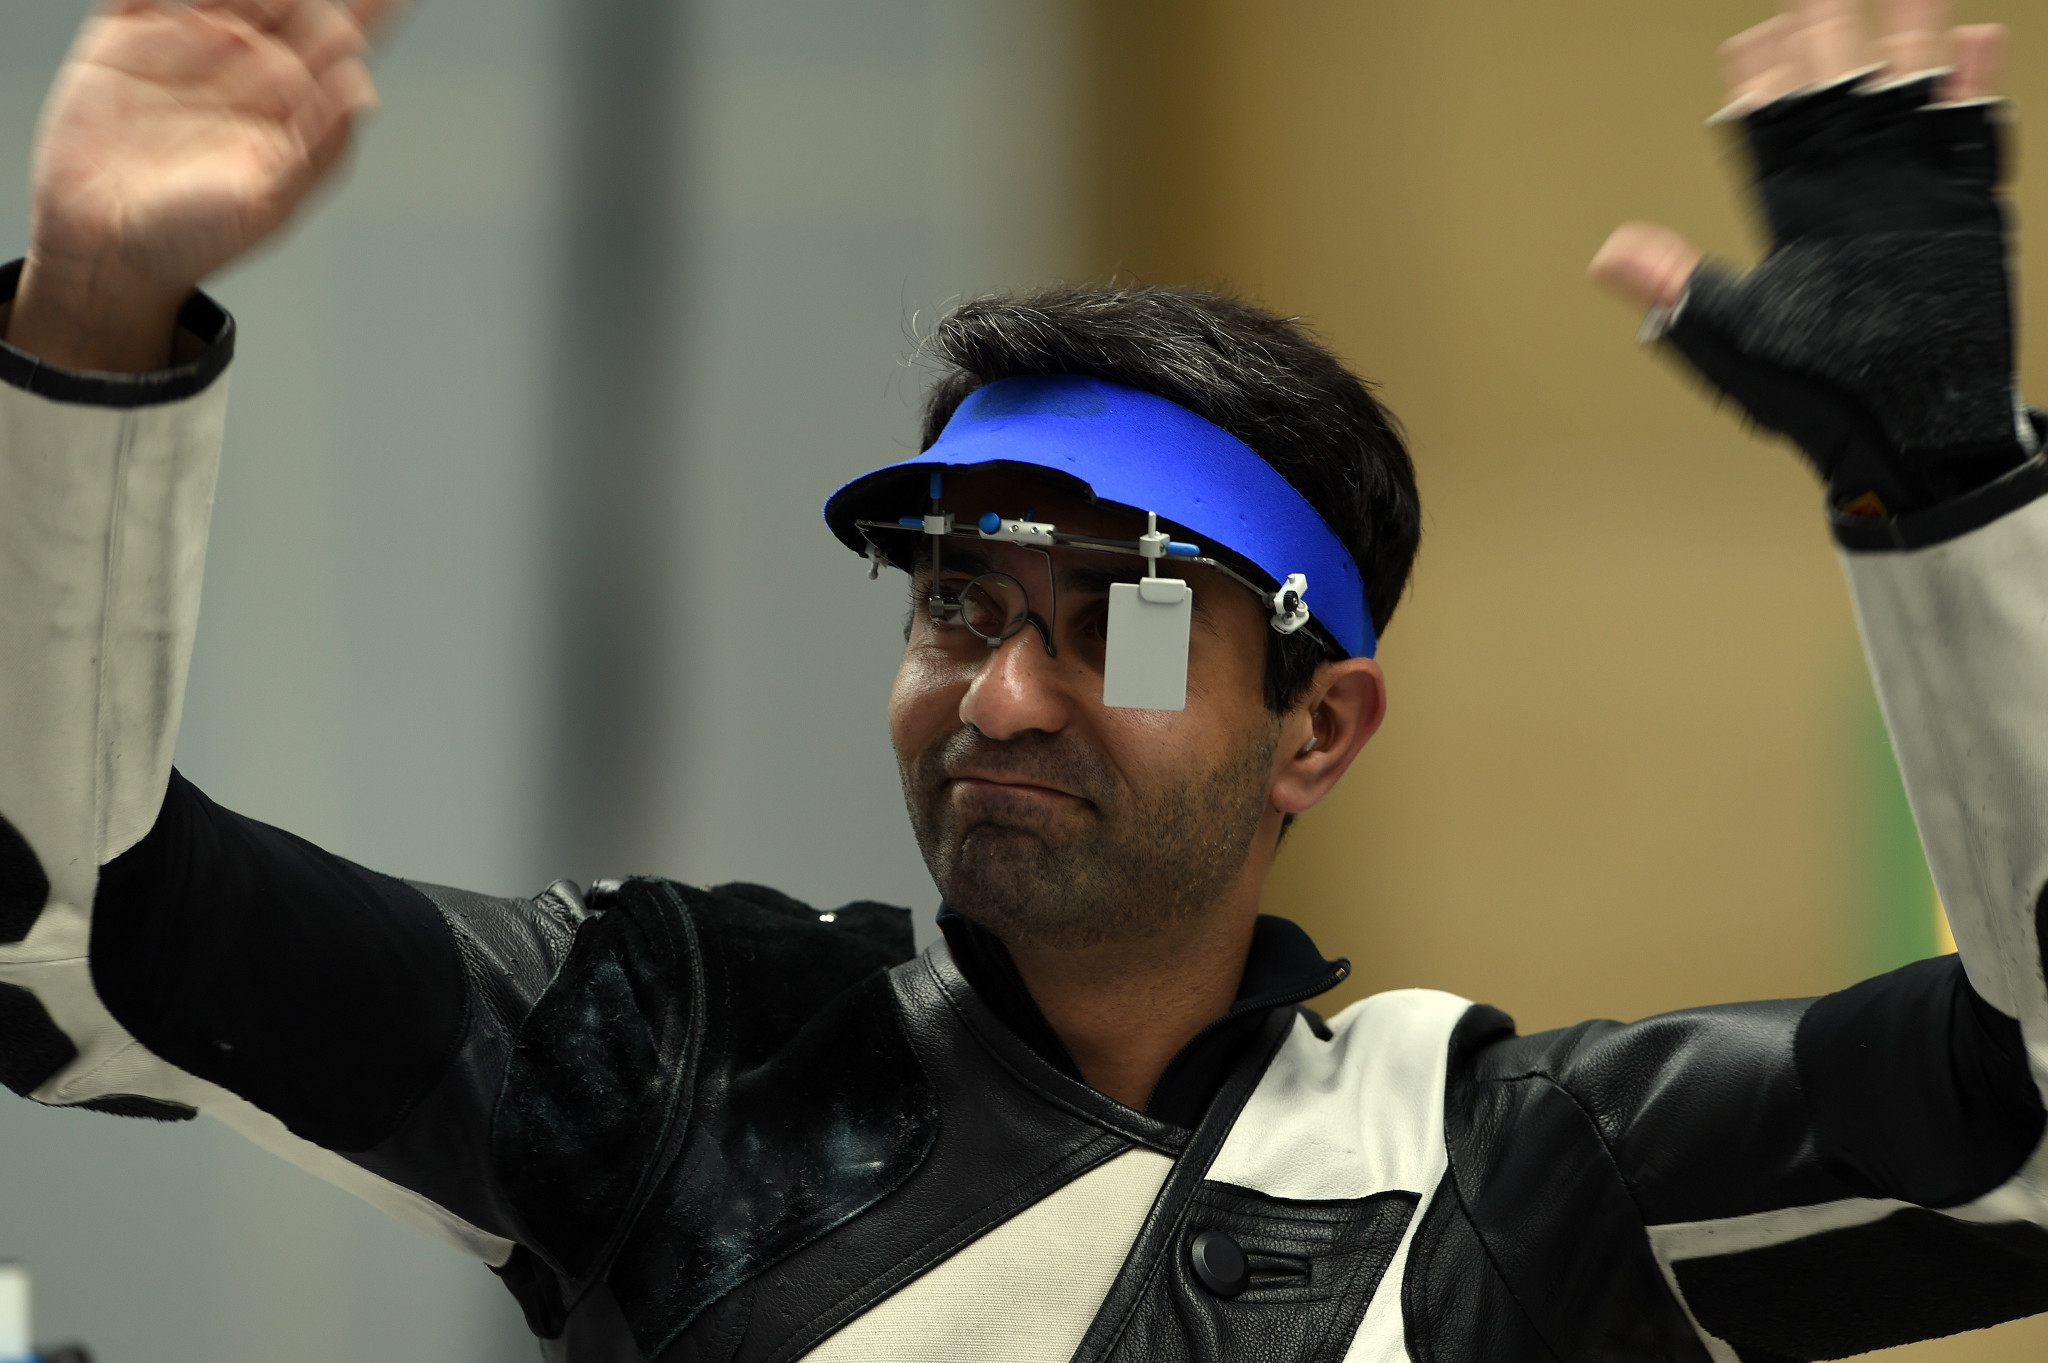 Olympic gold medallist Abhinav Bindra has claimed India should not boycott Birmingham 2022 in protest at shooting's exclusion as it would be unfair to punish athletes in other sports ©Getty Images